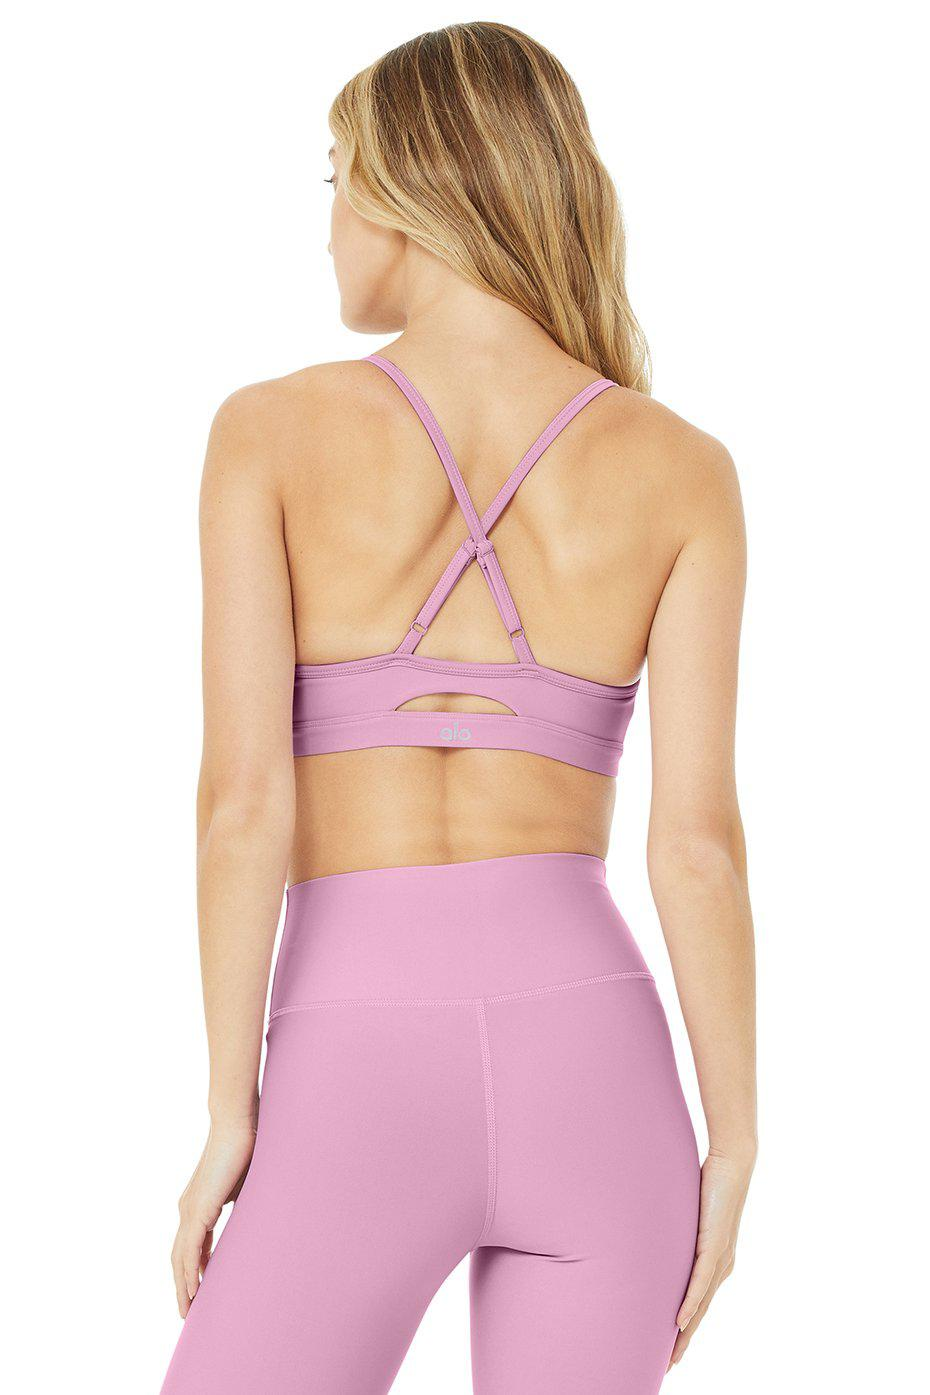 Airlift Intrigue Bra - Pink Lavender 2